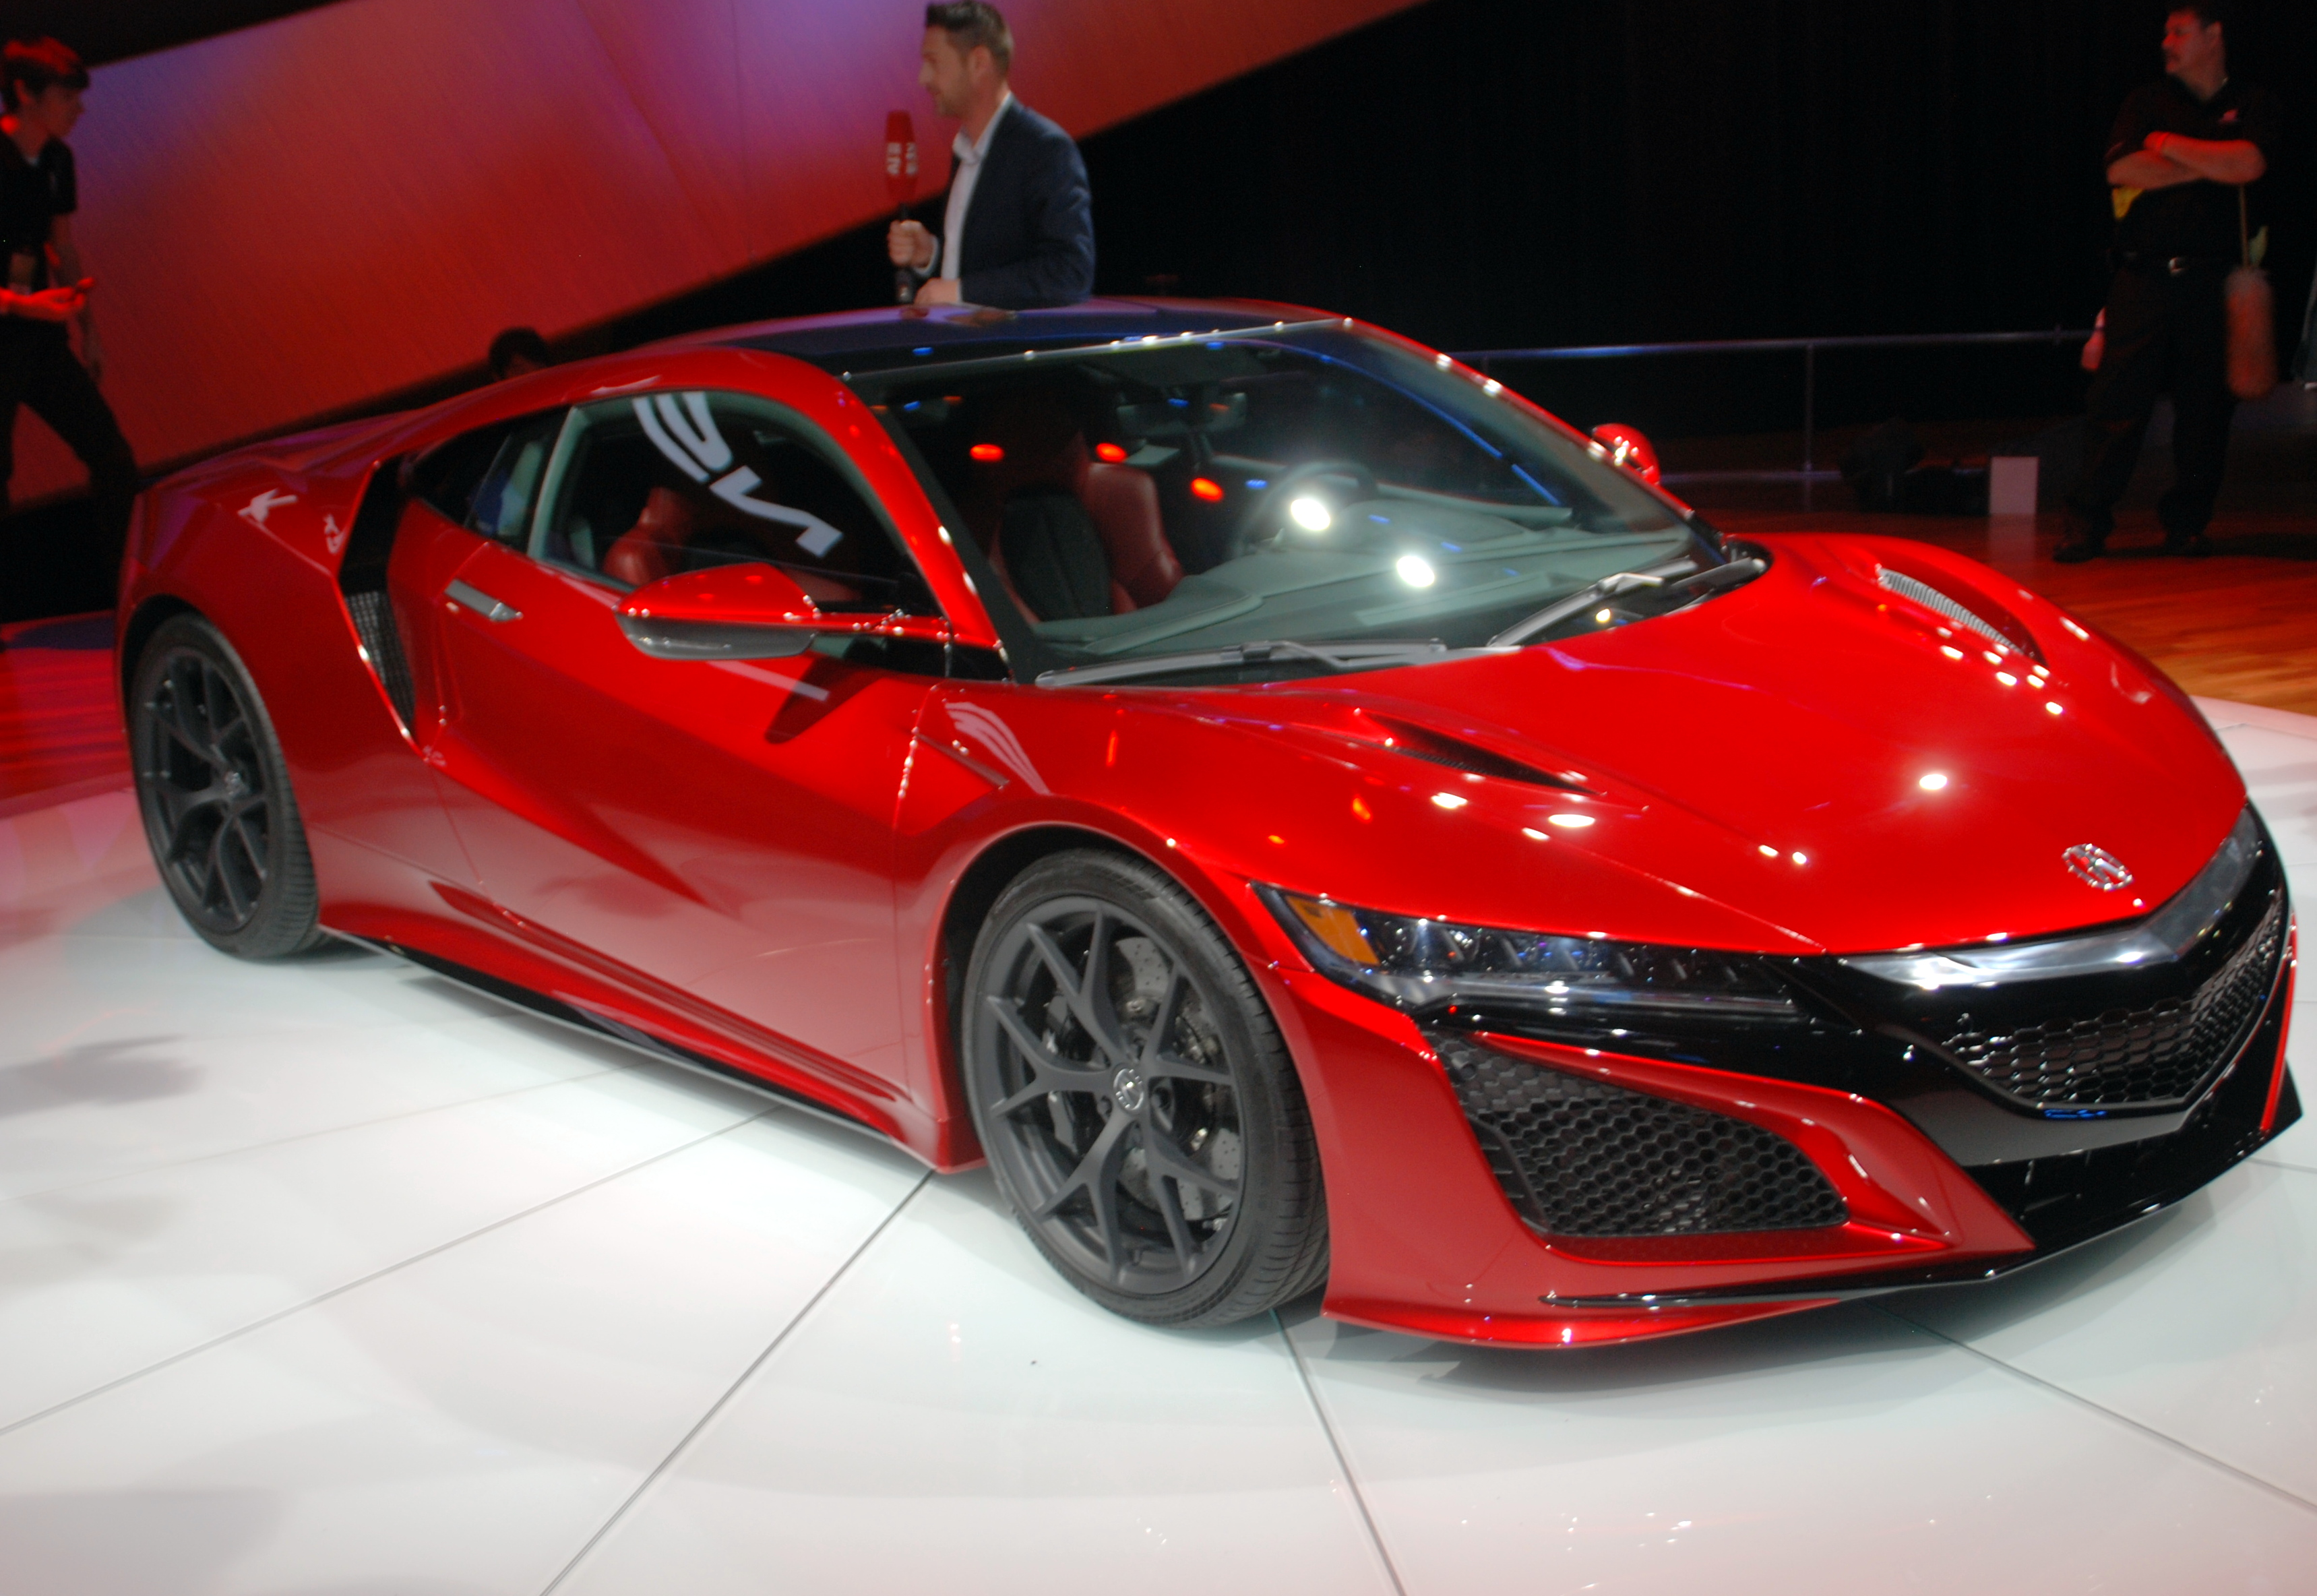 Acura Nsx Hybrid Sports Car Performance Fuel Economy